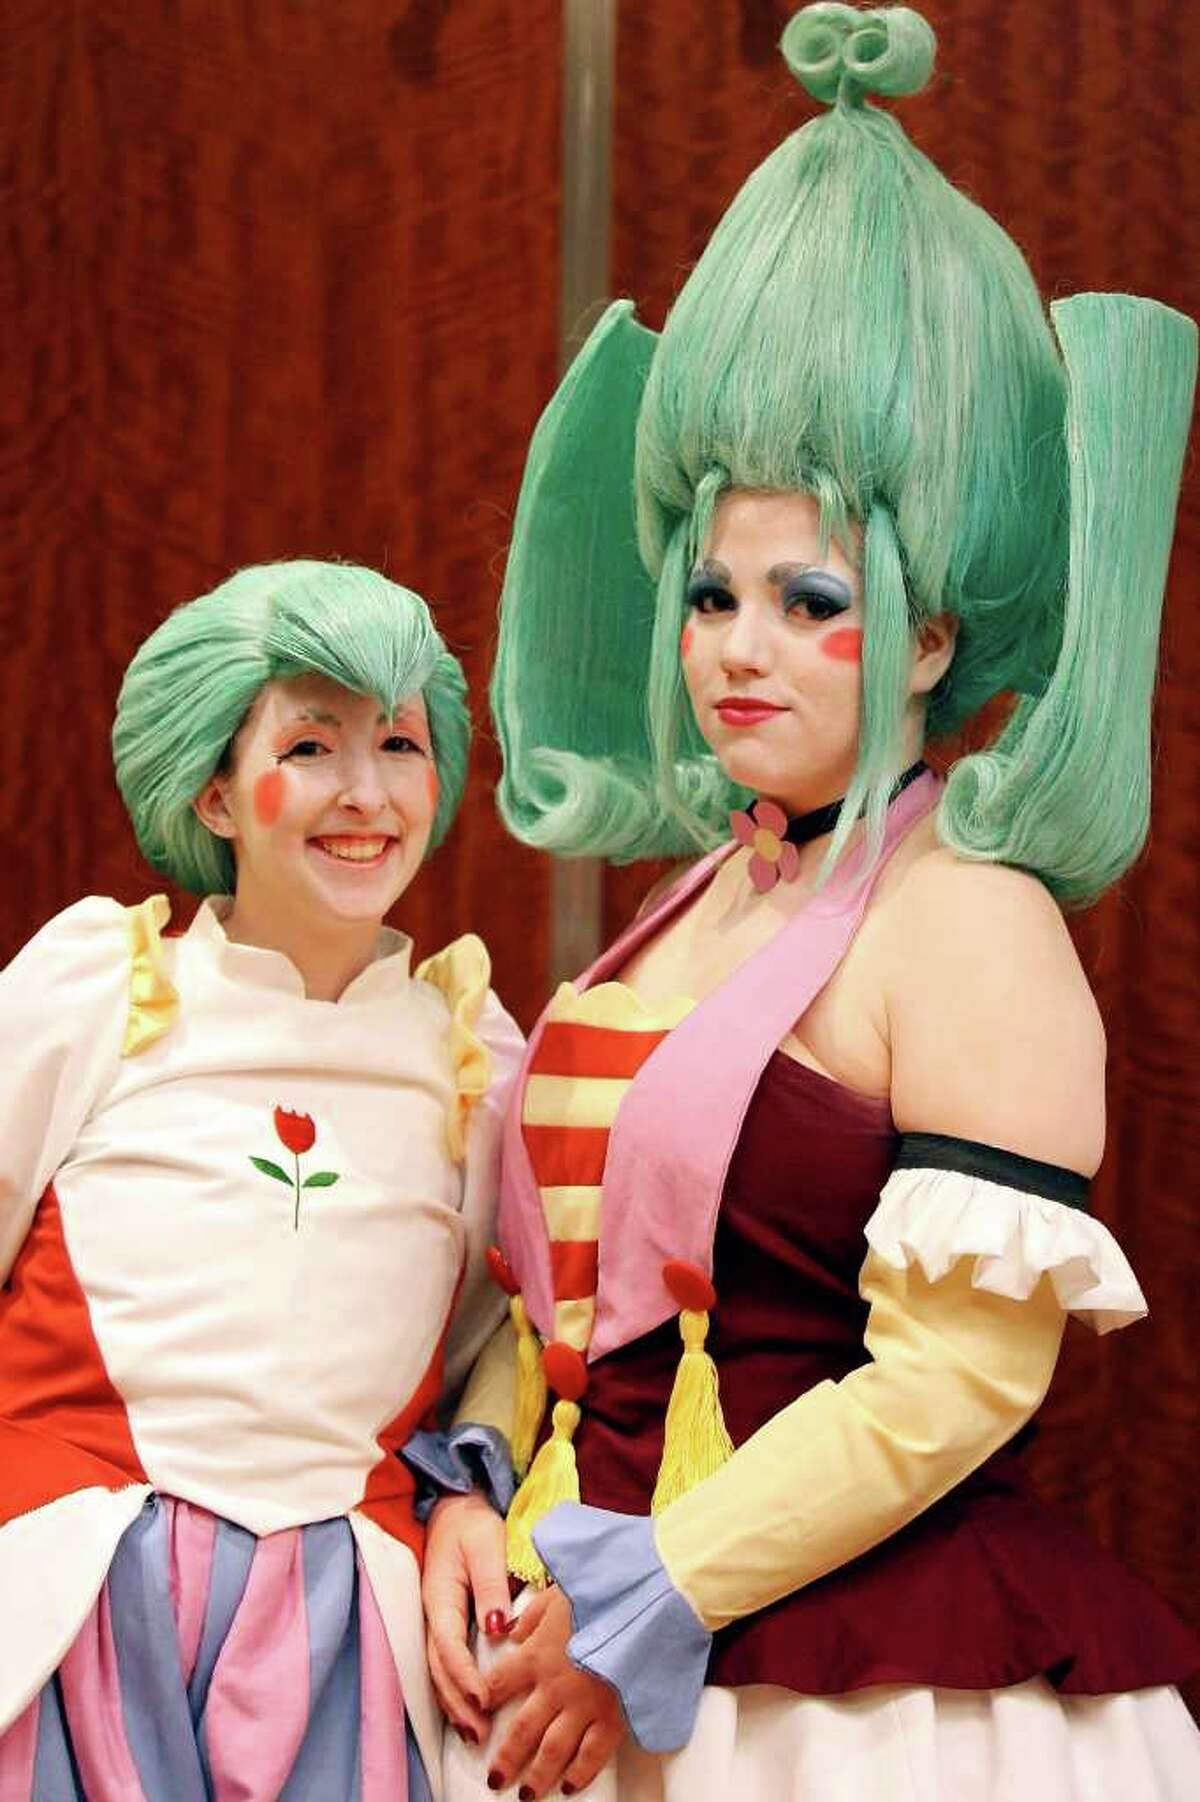 """Jenny Pennington, 28, as """"Uzura"""" (left) and Beauty Thibodeau, 23, as """"Edel """"pose for a photo while attending the San Japan 4TW convention Saturday Aug. 6, 2011 at the Marriott Rivercenter. San Japan 4TW runs Aug. 5-Aug. 7th."""